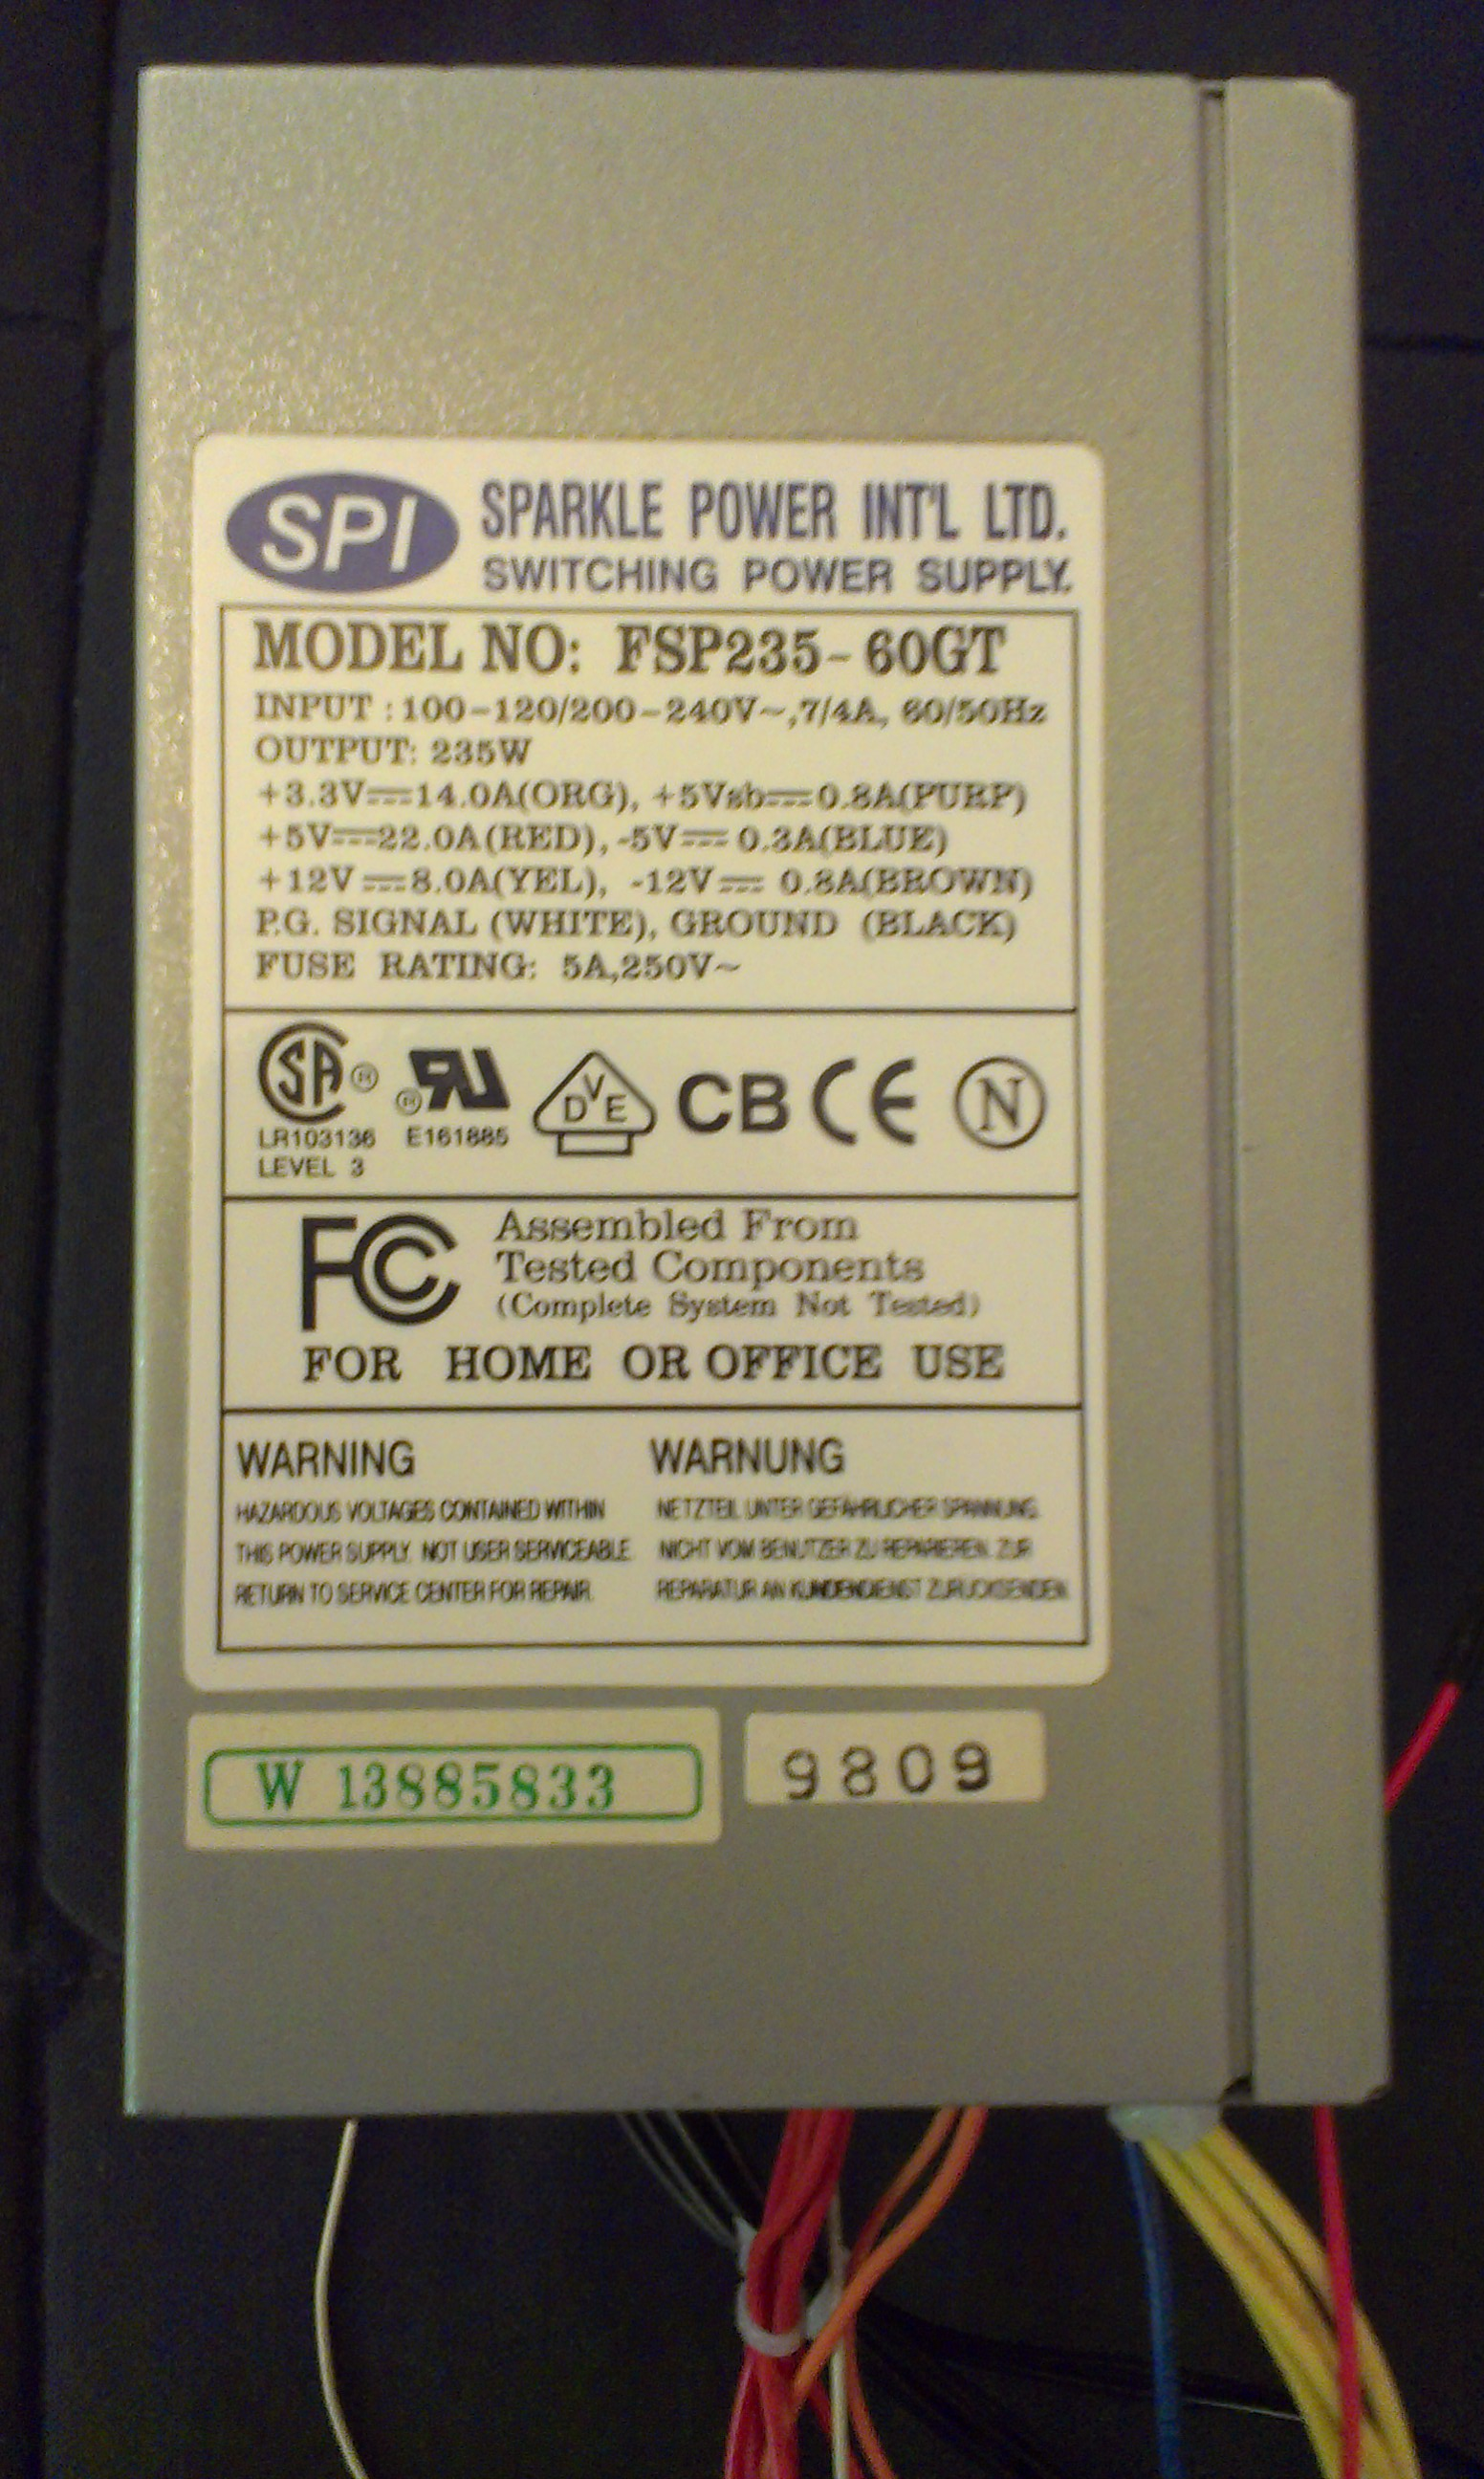 The label shower the power supplies specs. This is an older, weaker one.